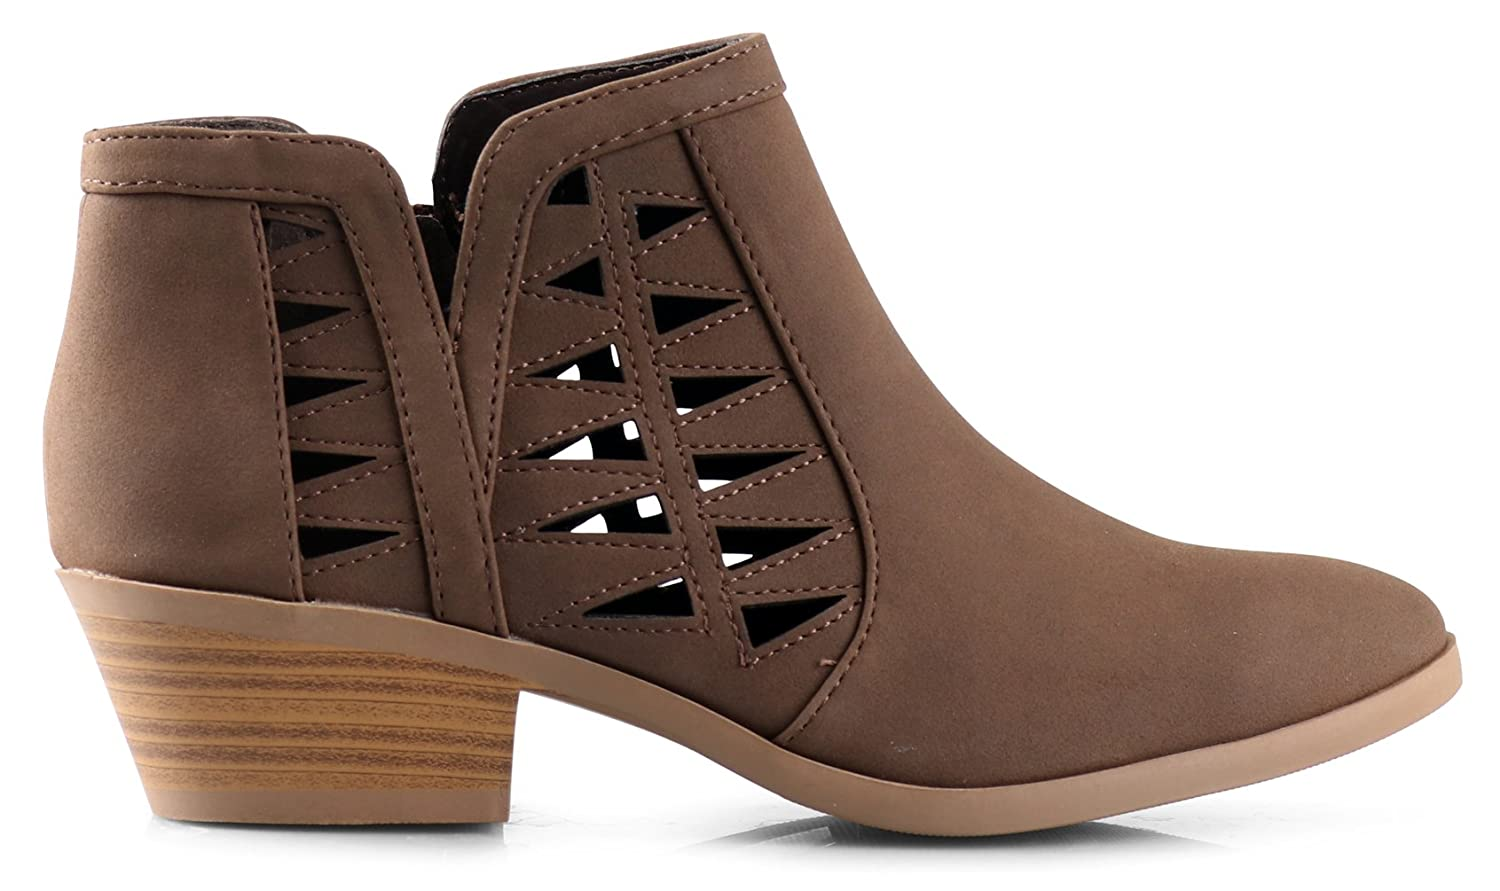 SODA Chance Womens Closed Toe Multi Strap Ankle Bootie